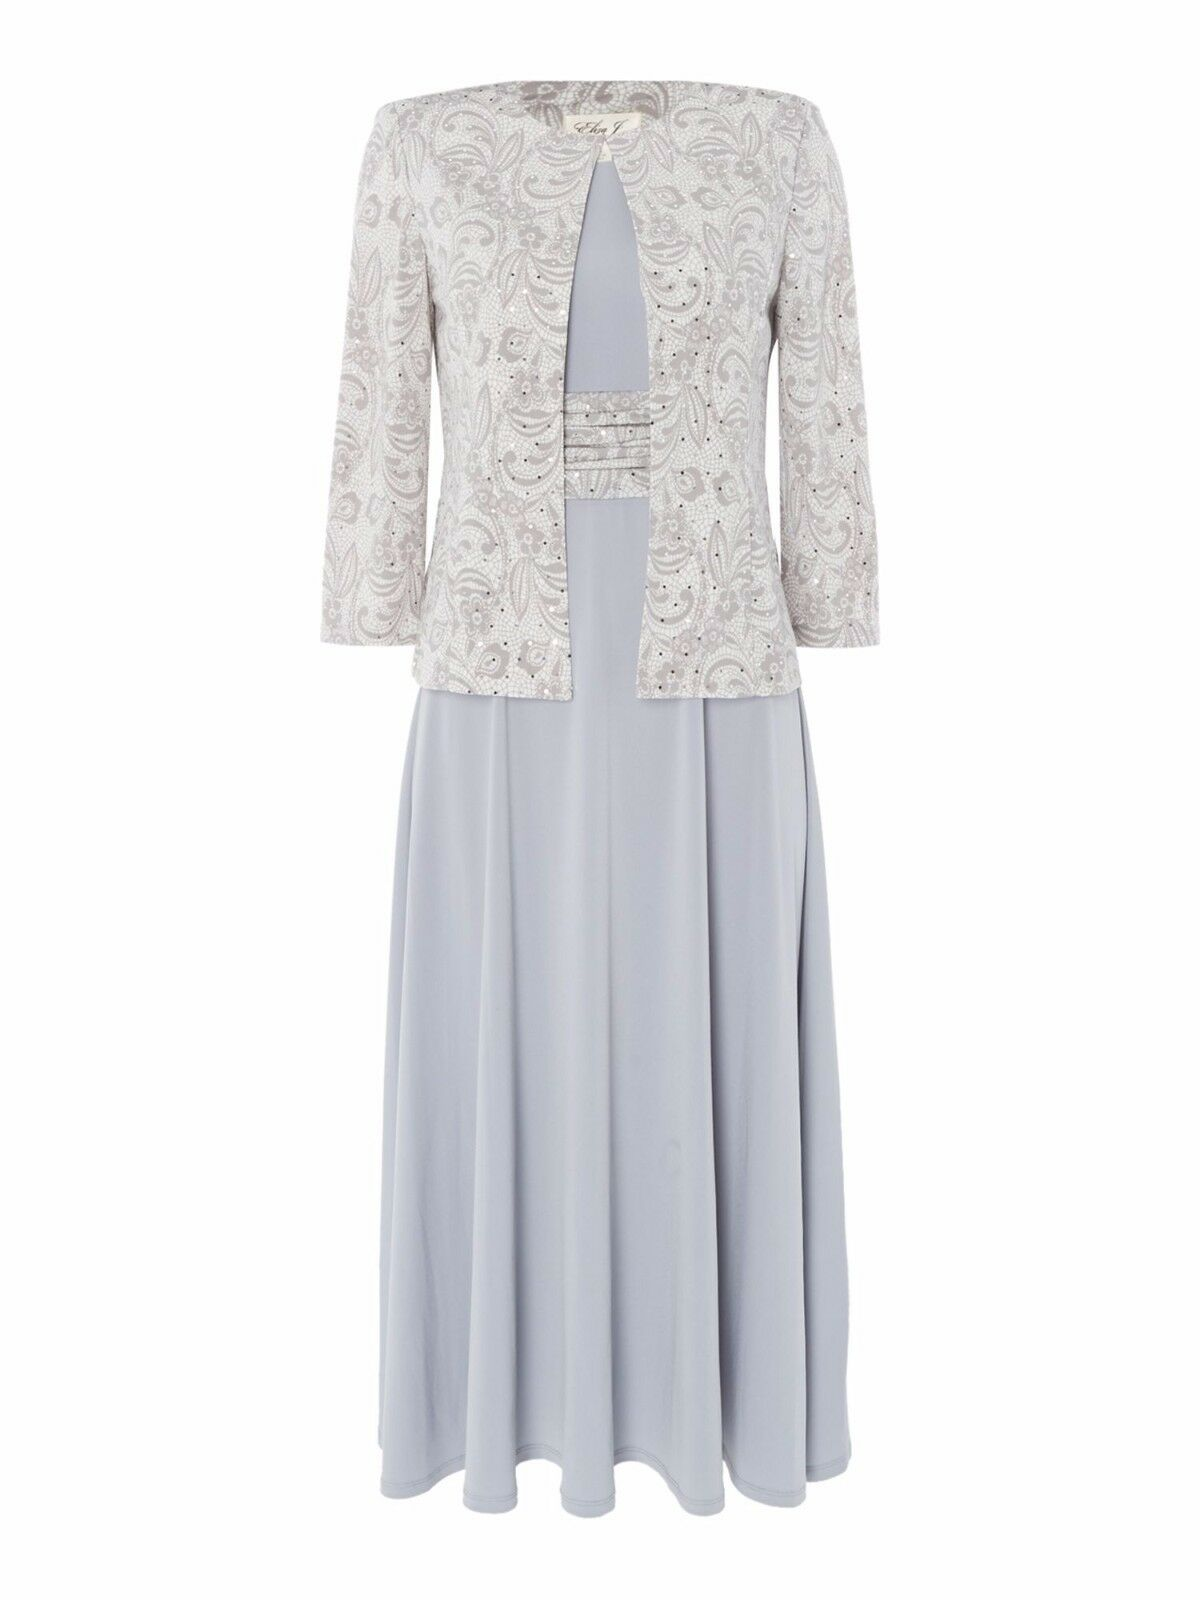 Eliza J Jersey Printed Occasion Dress With Jacket Grey TD172 OO 02